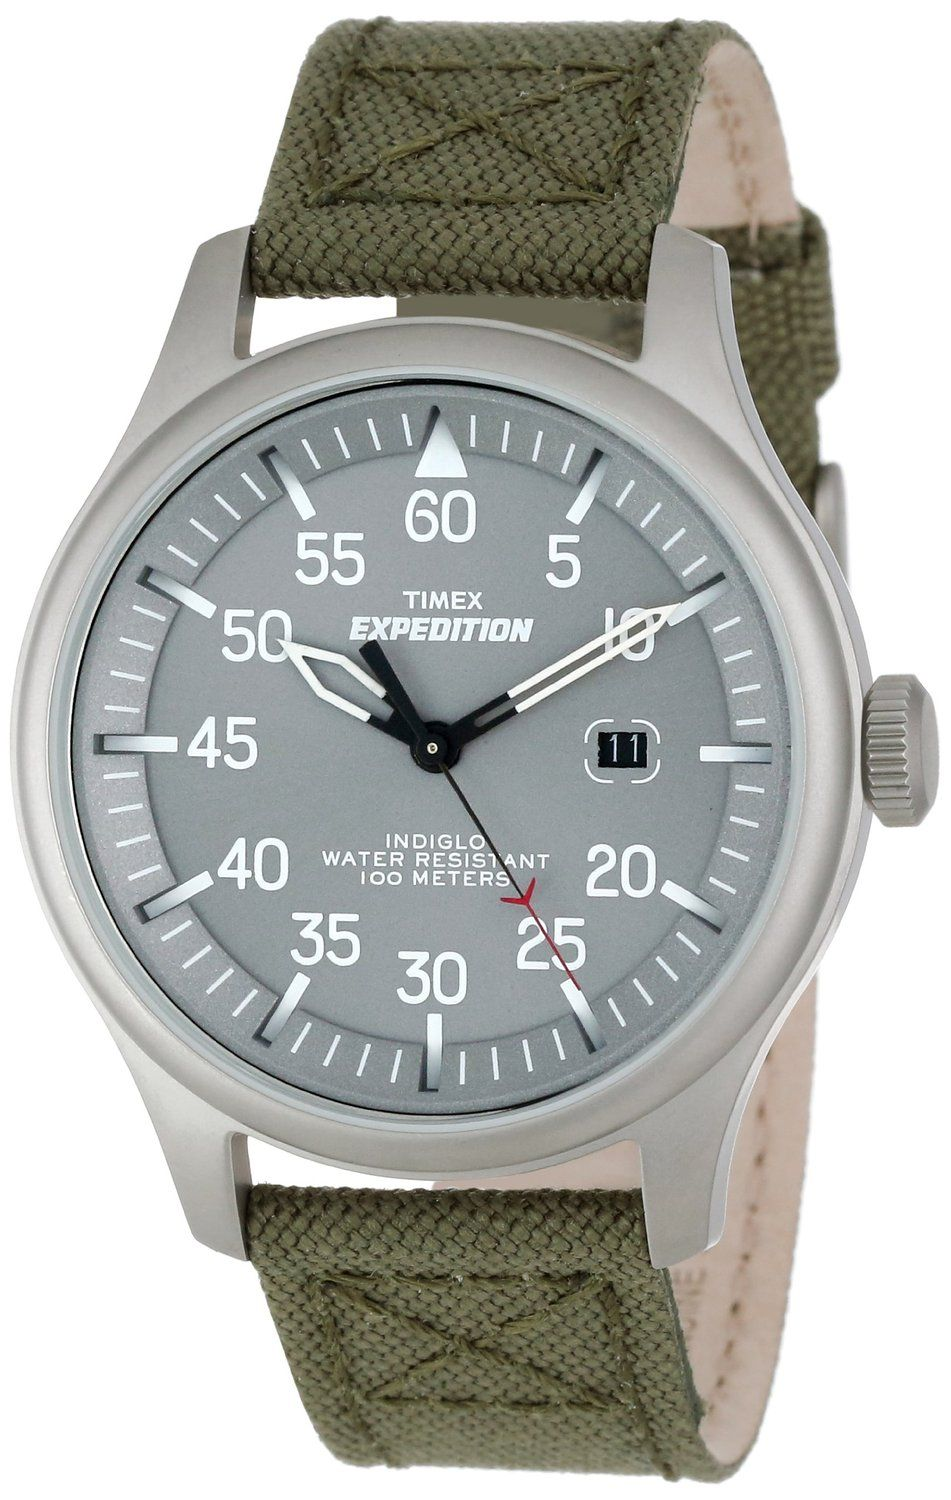 076fd4eebf44 Timex Expedition T49875 Field Watch  Owned